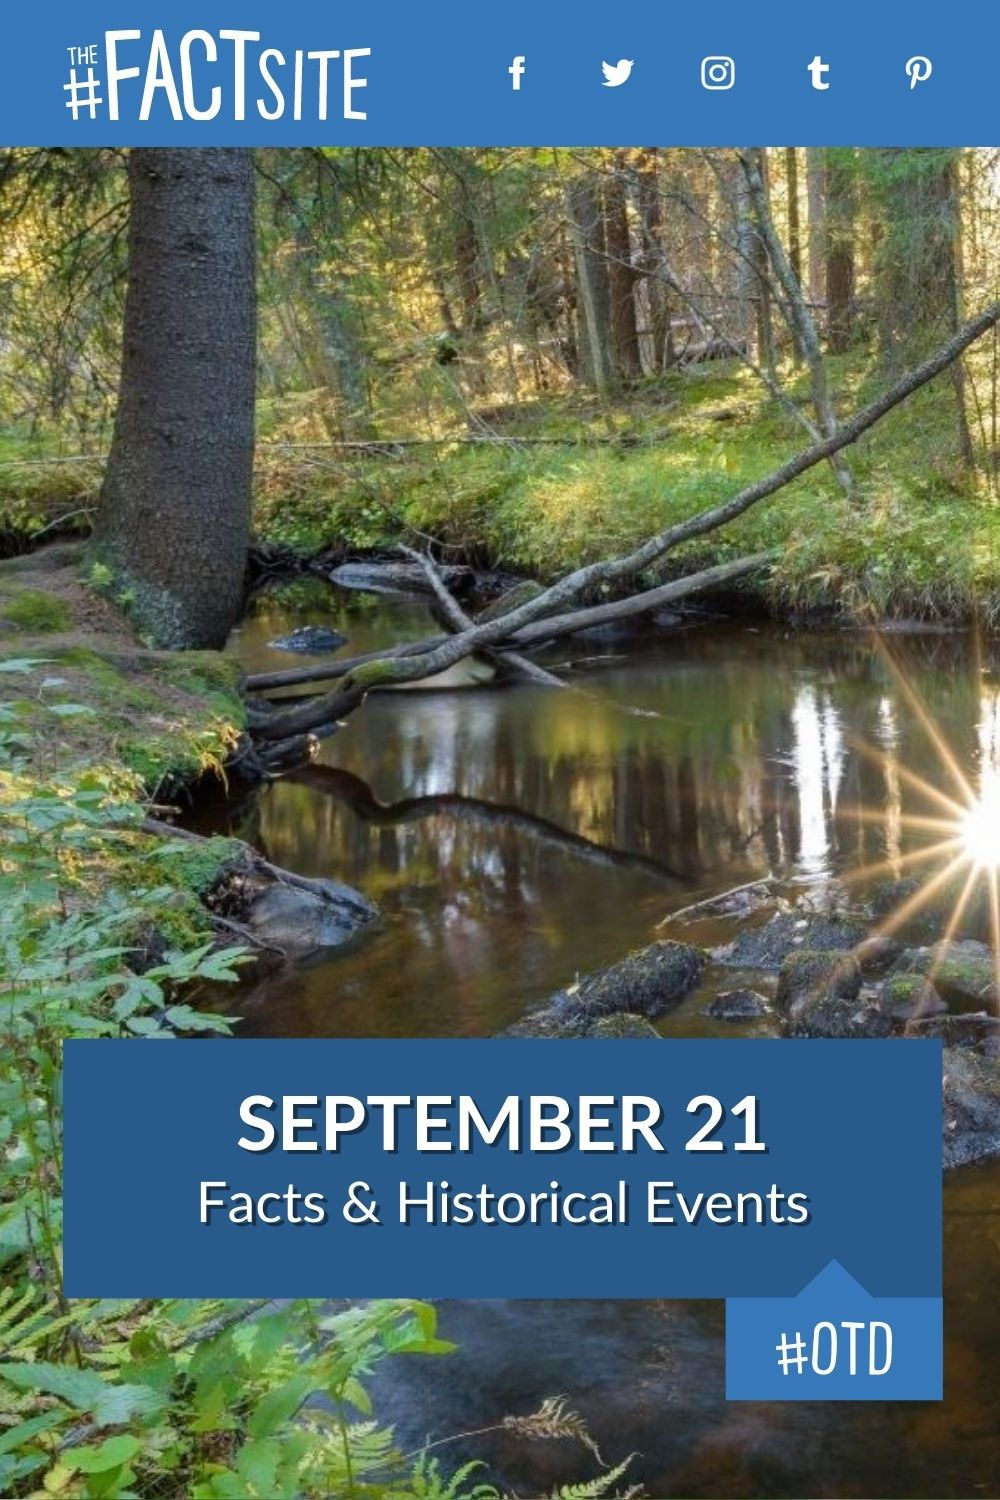 Facts & Historic Events That Happened on September 21